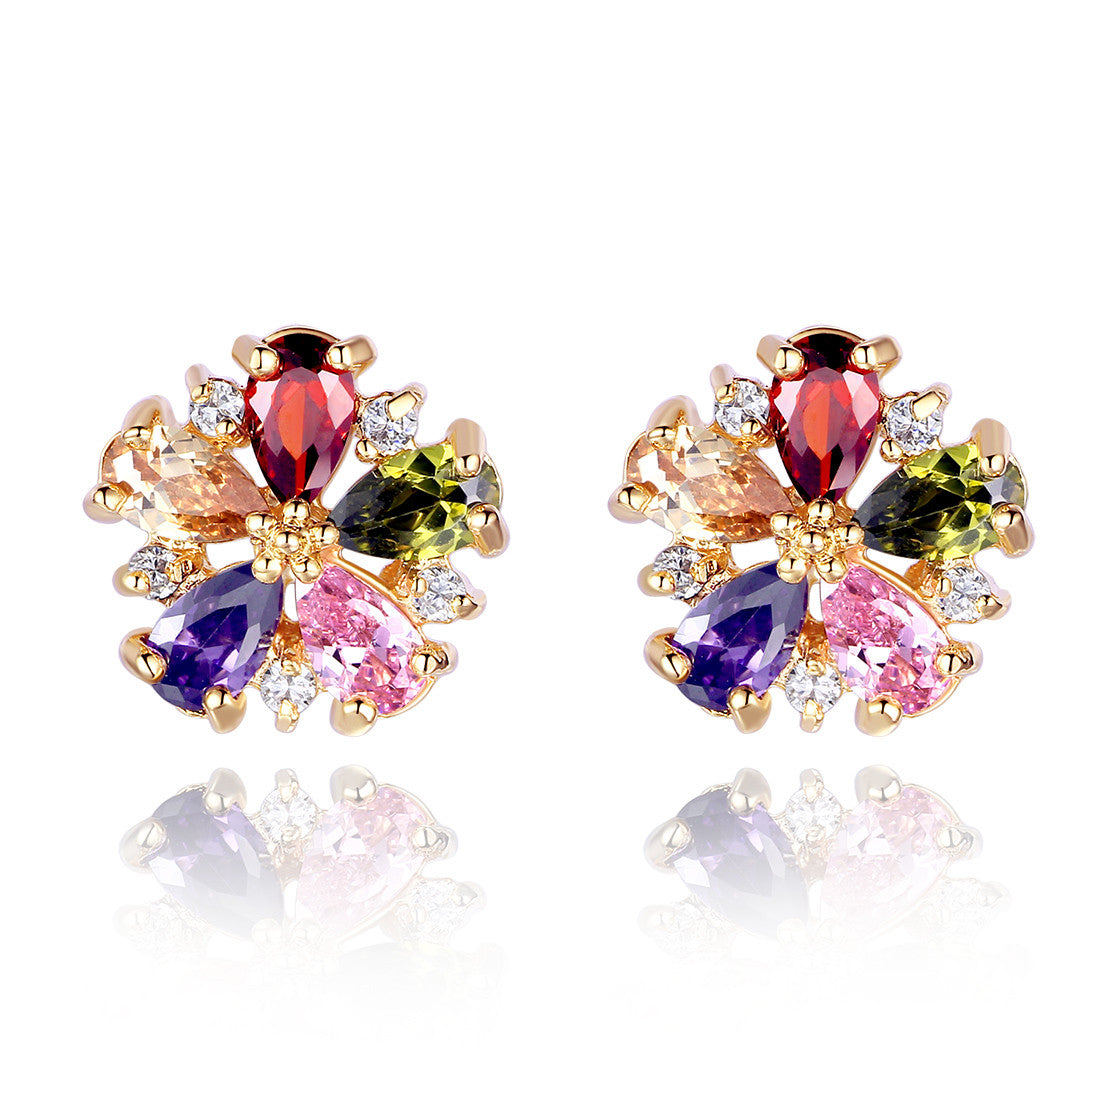 setting color party earrings cz square earring crystal in accessories palted stud stone on crytsal gold for jewelry women wedding item from body